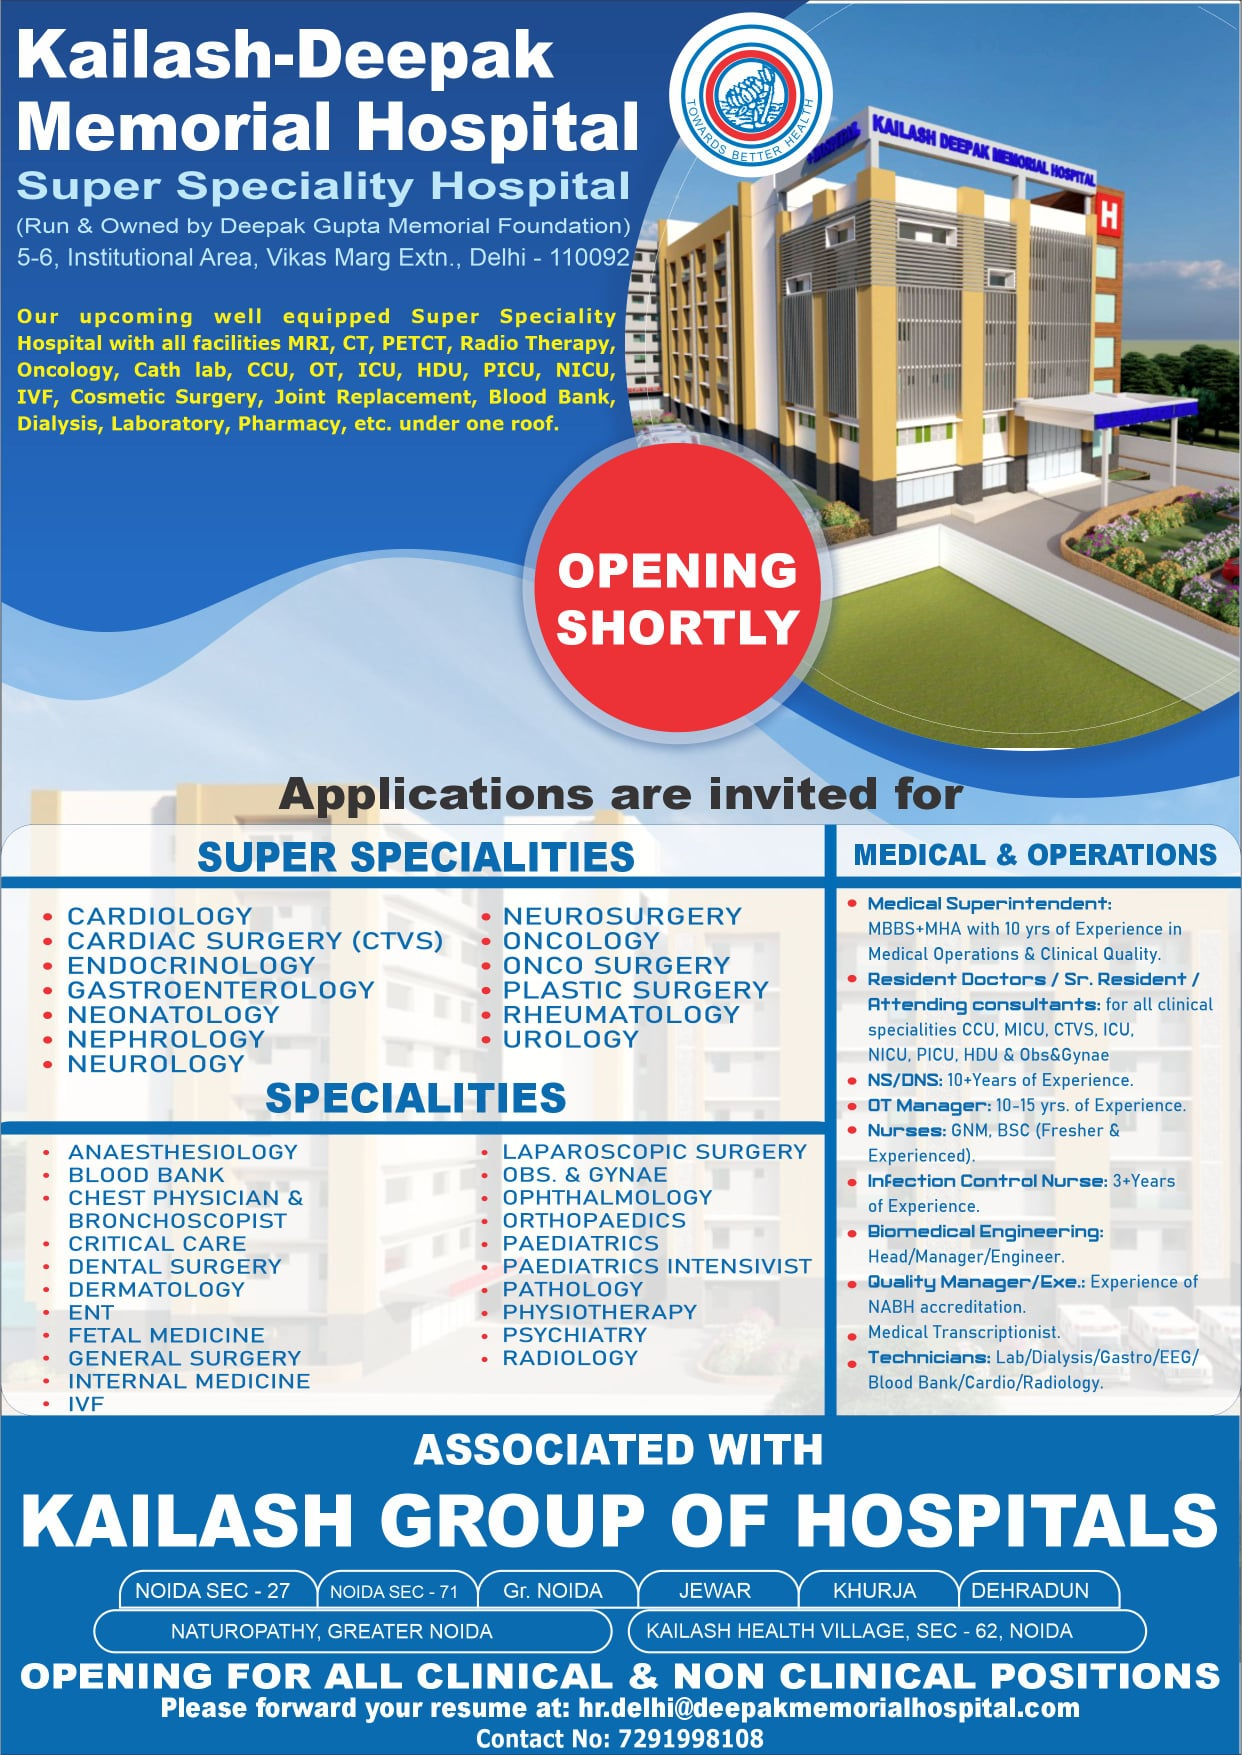 Delhi's one of the Most Advanced Super Speciality Kailash Deepak Memorial Hospital is Opening Shortly!